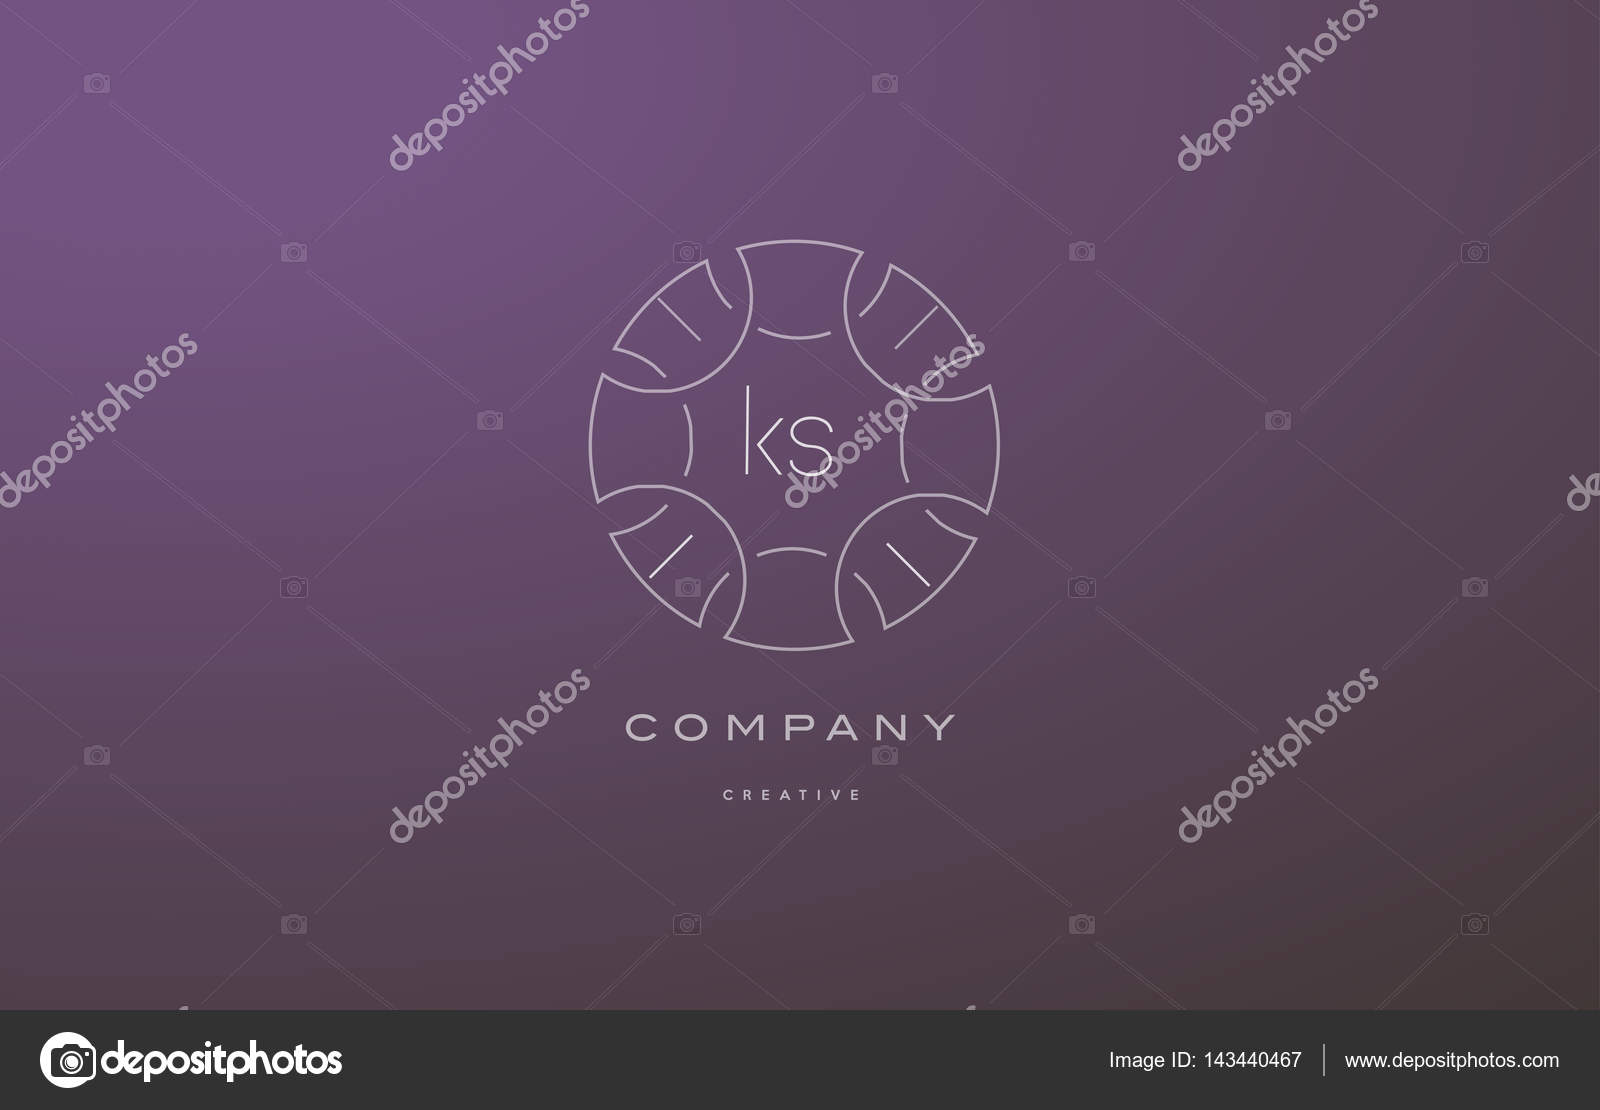 Ks K S Monogram Floral Line Art Flower Letter Company Logo Icon Stock Vector C Dragomirescu 143440467